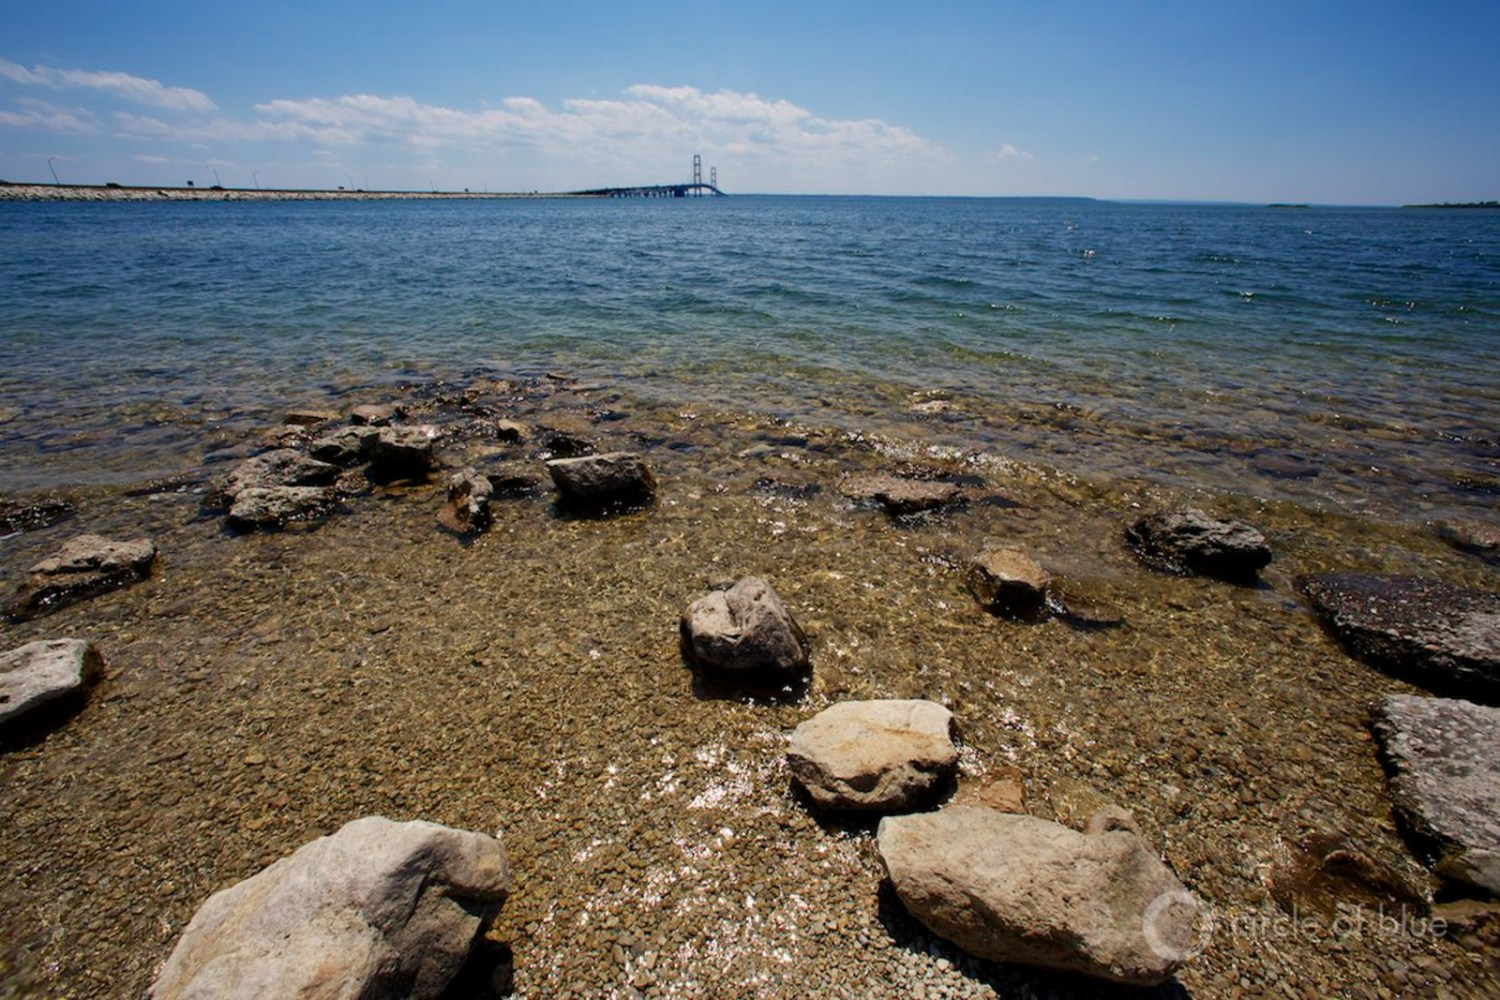 Studies have estimated that as many as 1,000 kilometers of Lake Michigan and Lake Huron shoreline are vulnerable to an oil spill from the Line 5 straits crossing, though Enbridge disputes those findings.  Photo © J. Carl Ganter / Circle of Blue